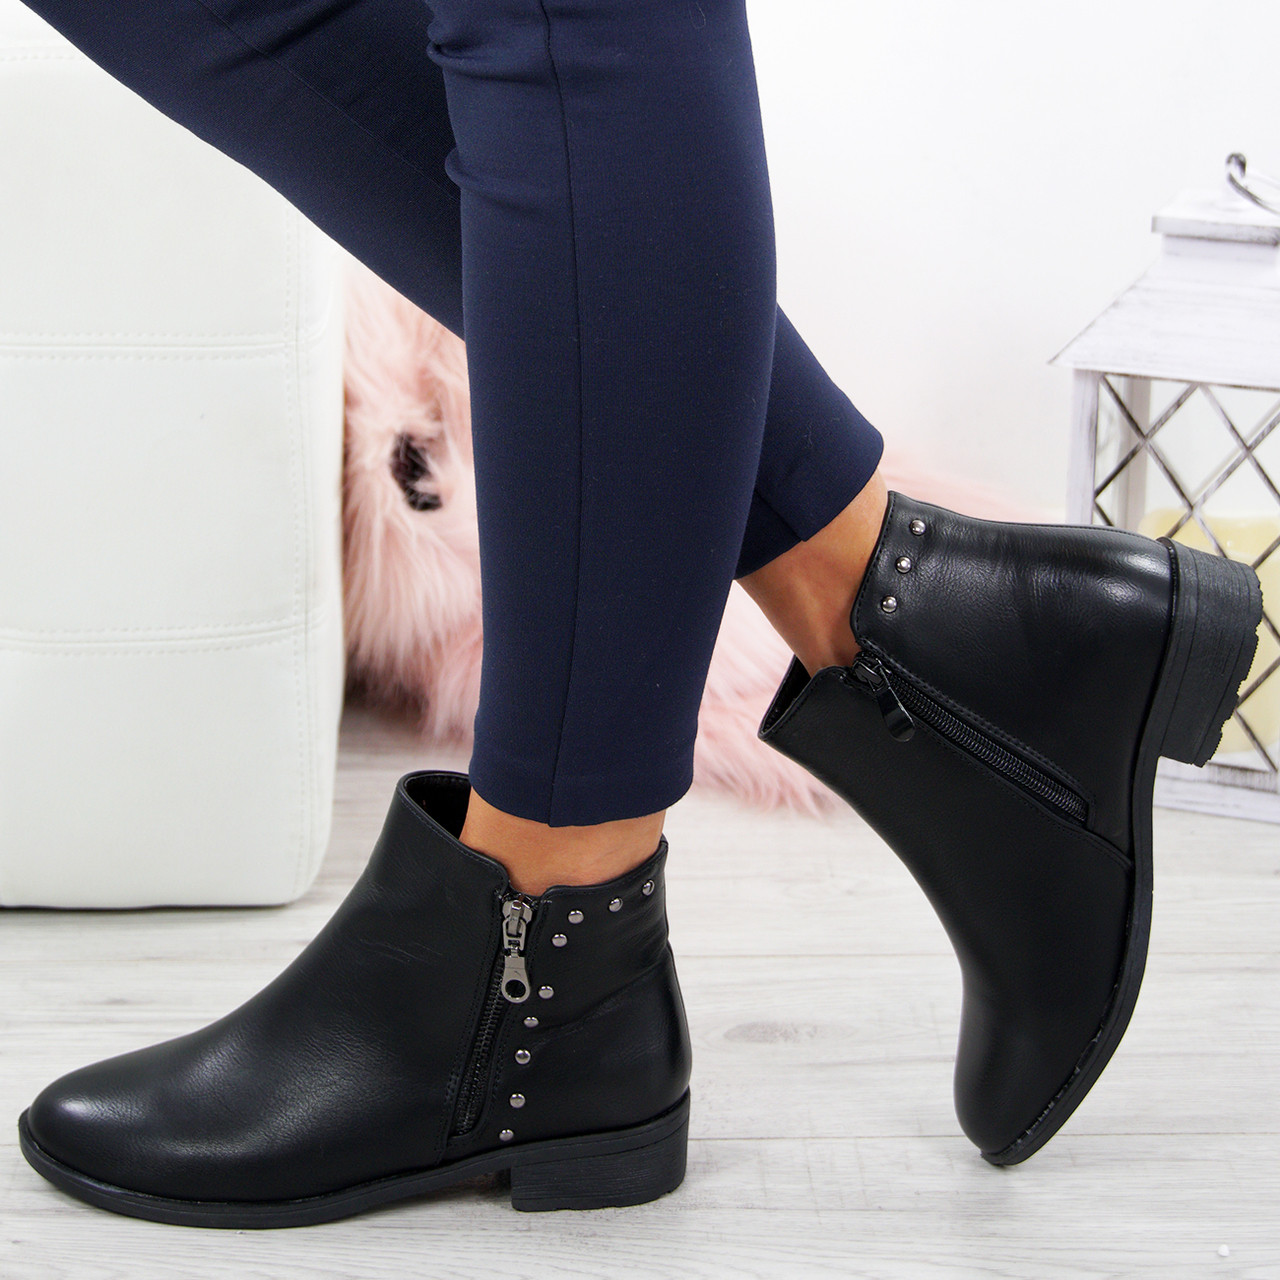 5643149e337 Ladies Ankle Studded Boots Womens Low Block Heel Zip Fastening Winter Shoes  Size